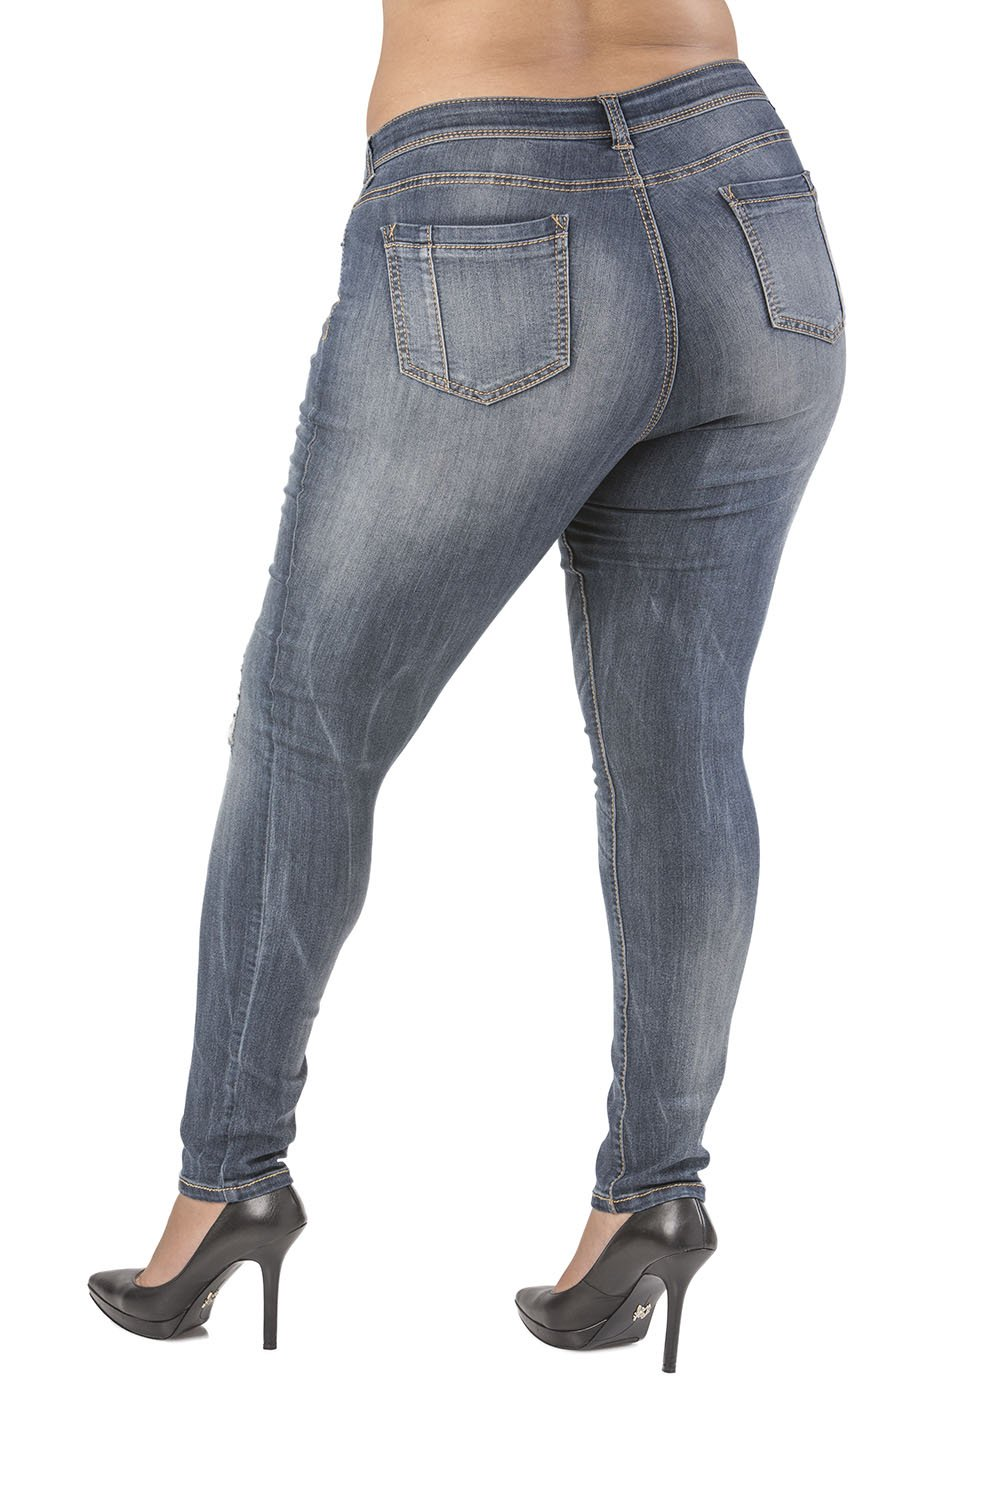 Poetic Justice Plus Size Women's Curvy Fit Blue Vintage Wash Destroyed Skinny Jeans Size 20 x 32Length by Poetic Justice (Image #1)